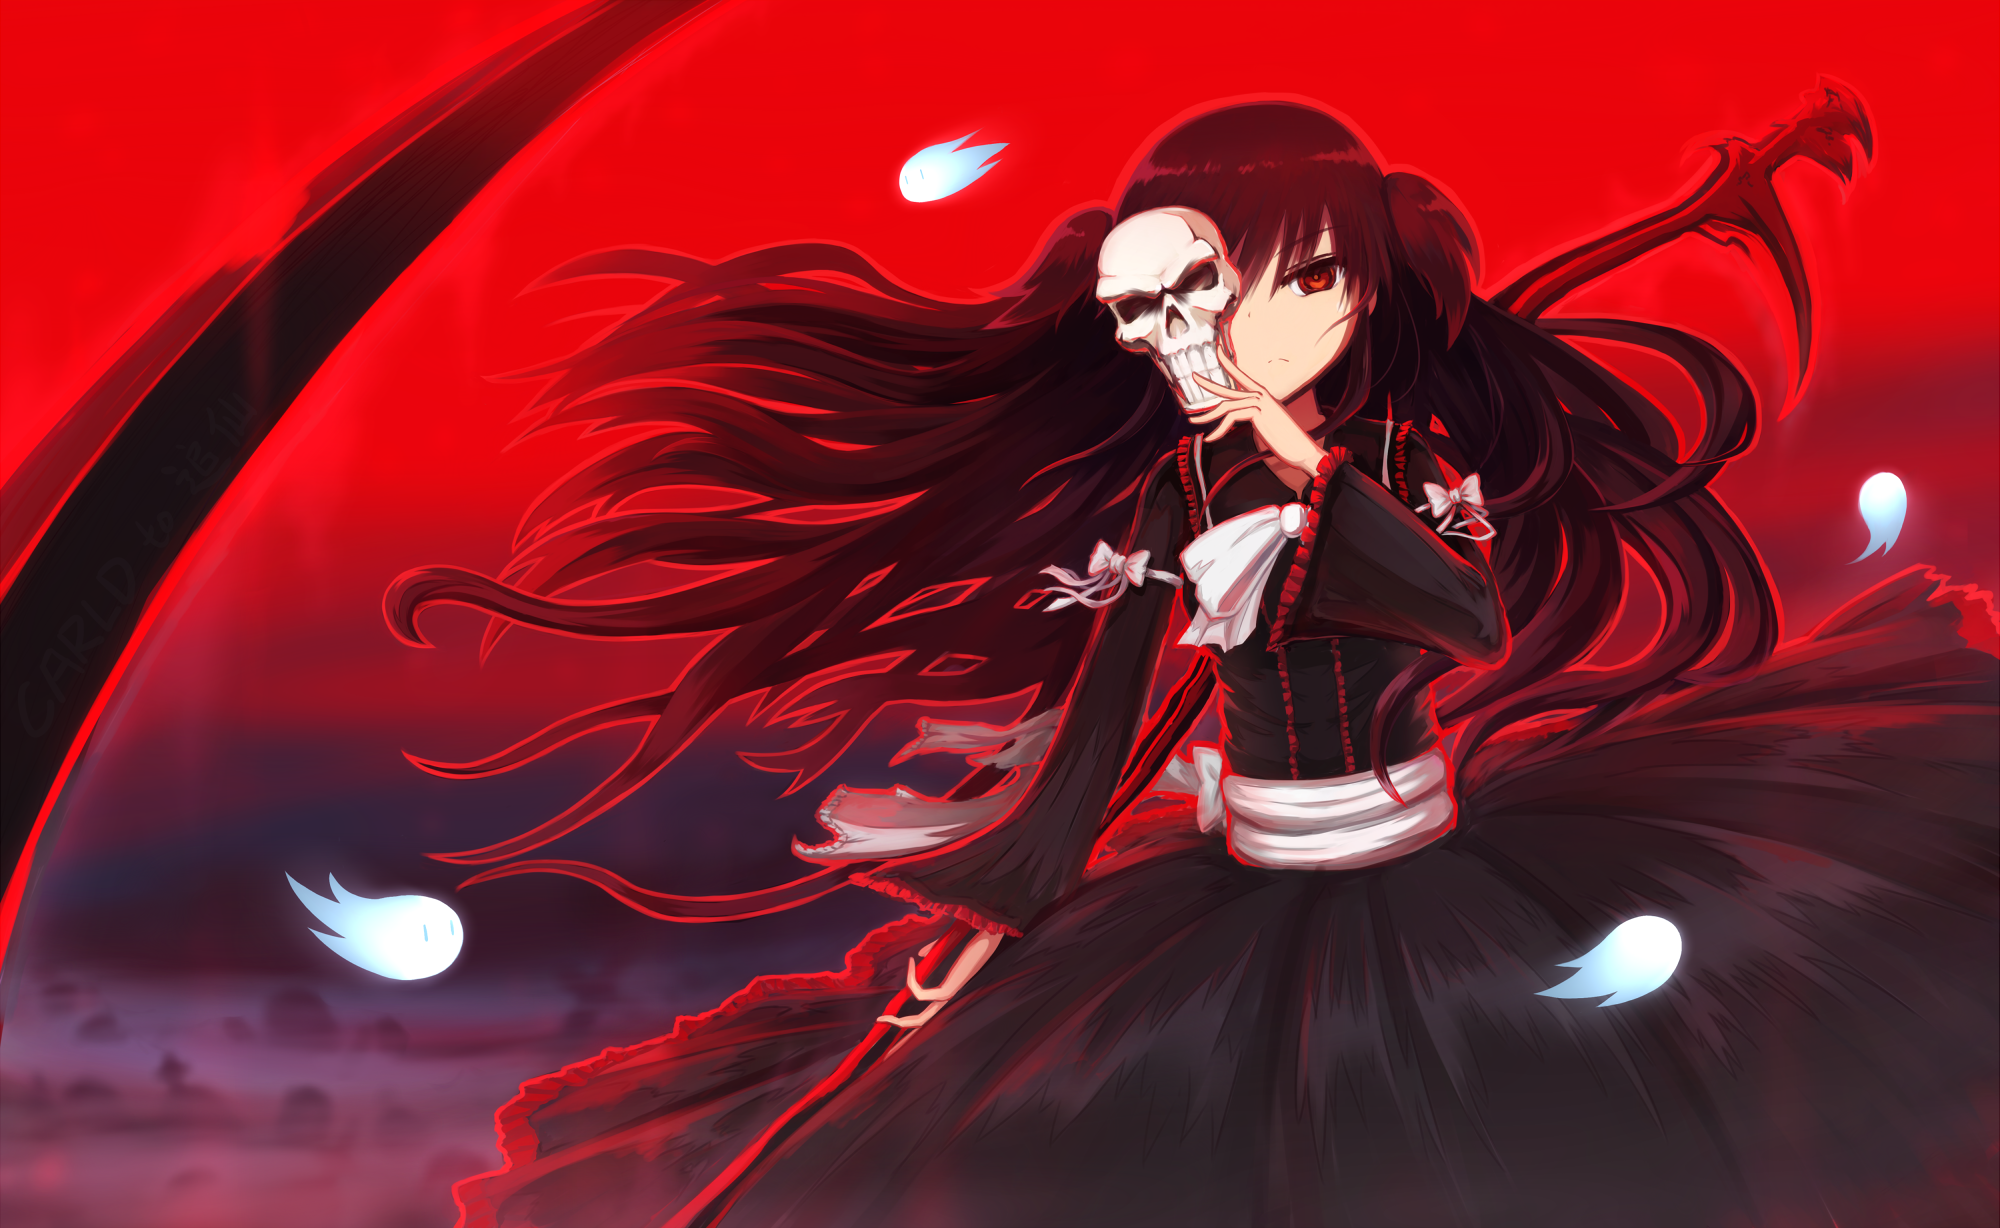 Blood Anime Wallpapers Top Free Blood Anime Backgrounds Wallpaperaccess